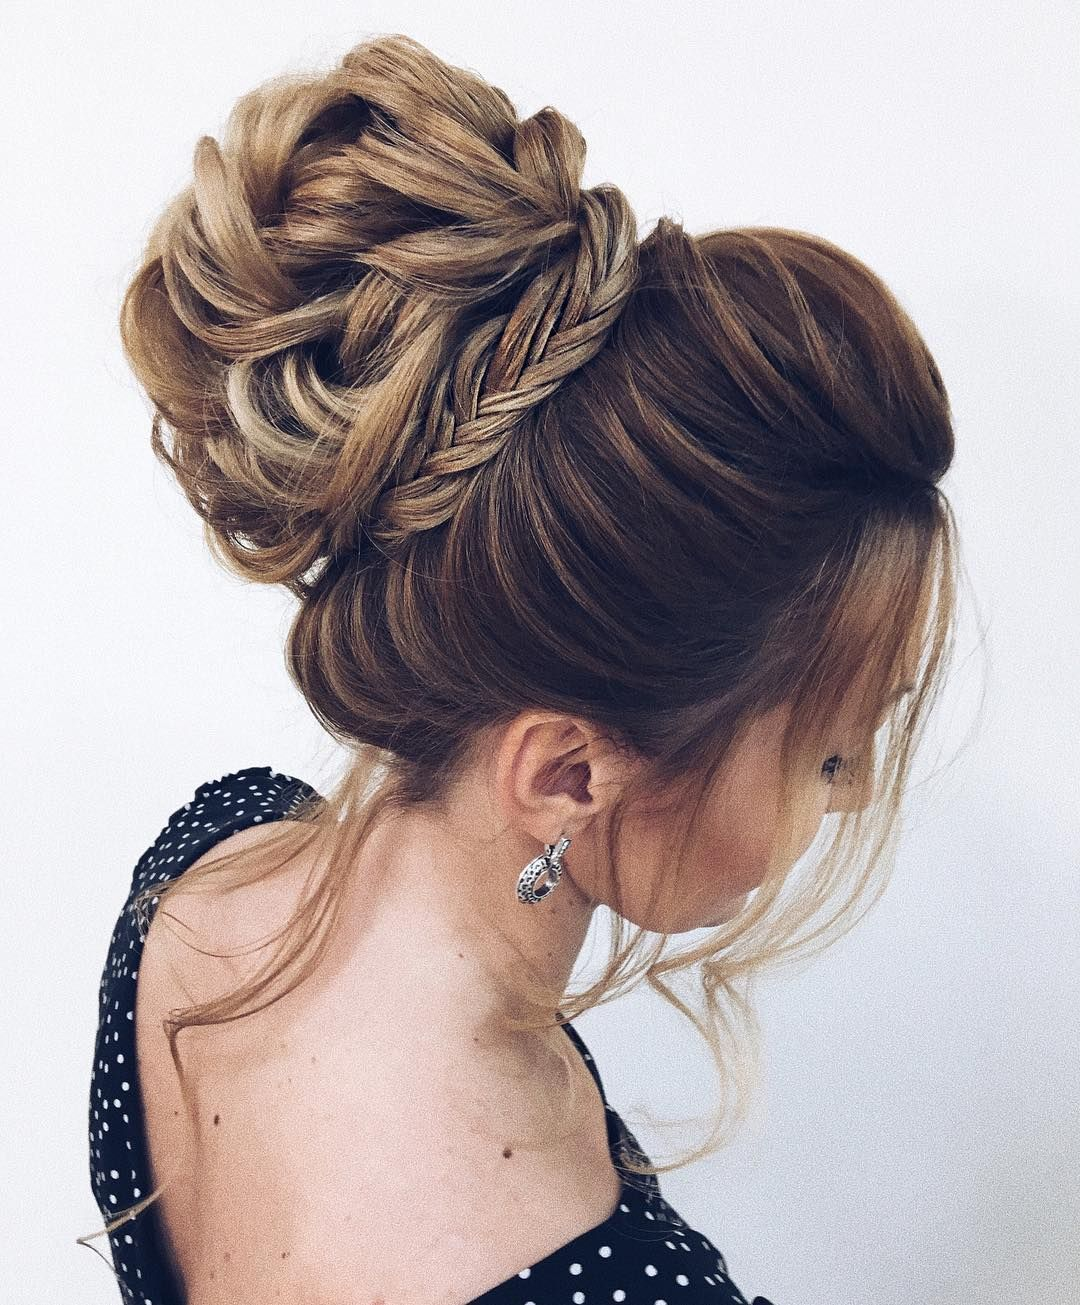 Unique updo hairstyle high bun hairstyle prom hairstyles wedding